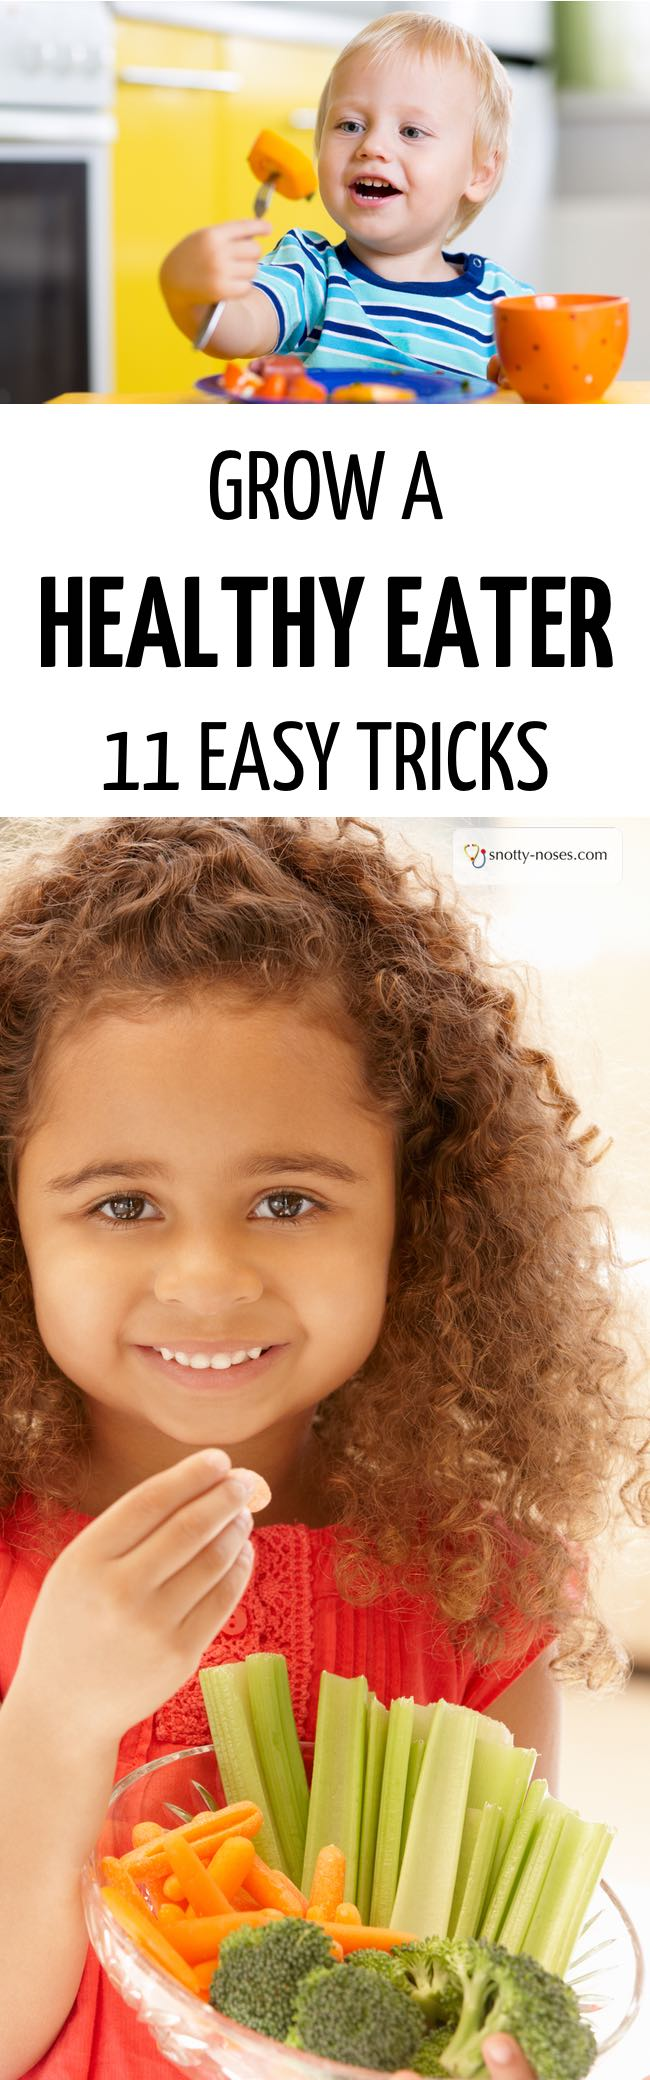 Grow a healthy eater! 11 tips to transform your child, picky eater or fussy toddler into a healthy eater.